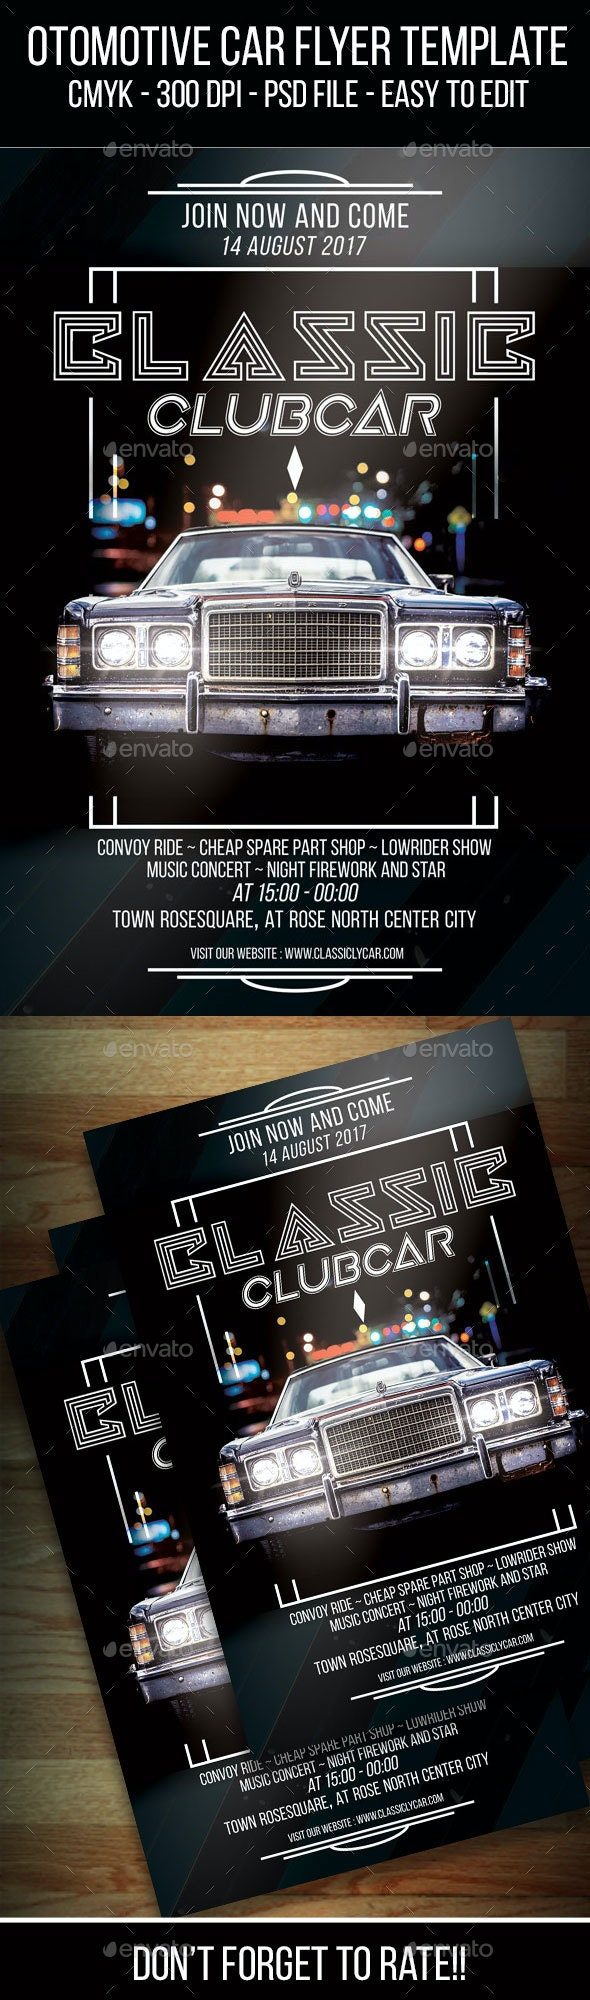 Ottomotive Car Flyer Template - Clubs & Parties Events